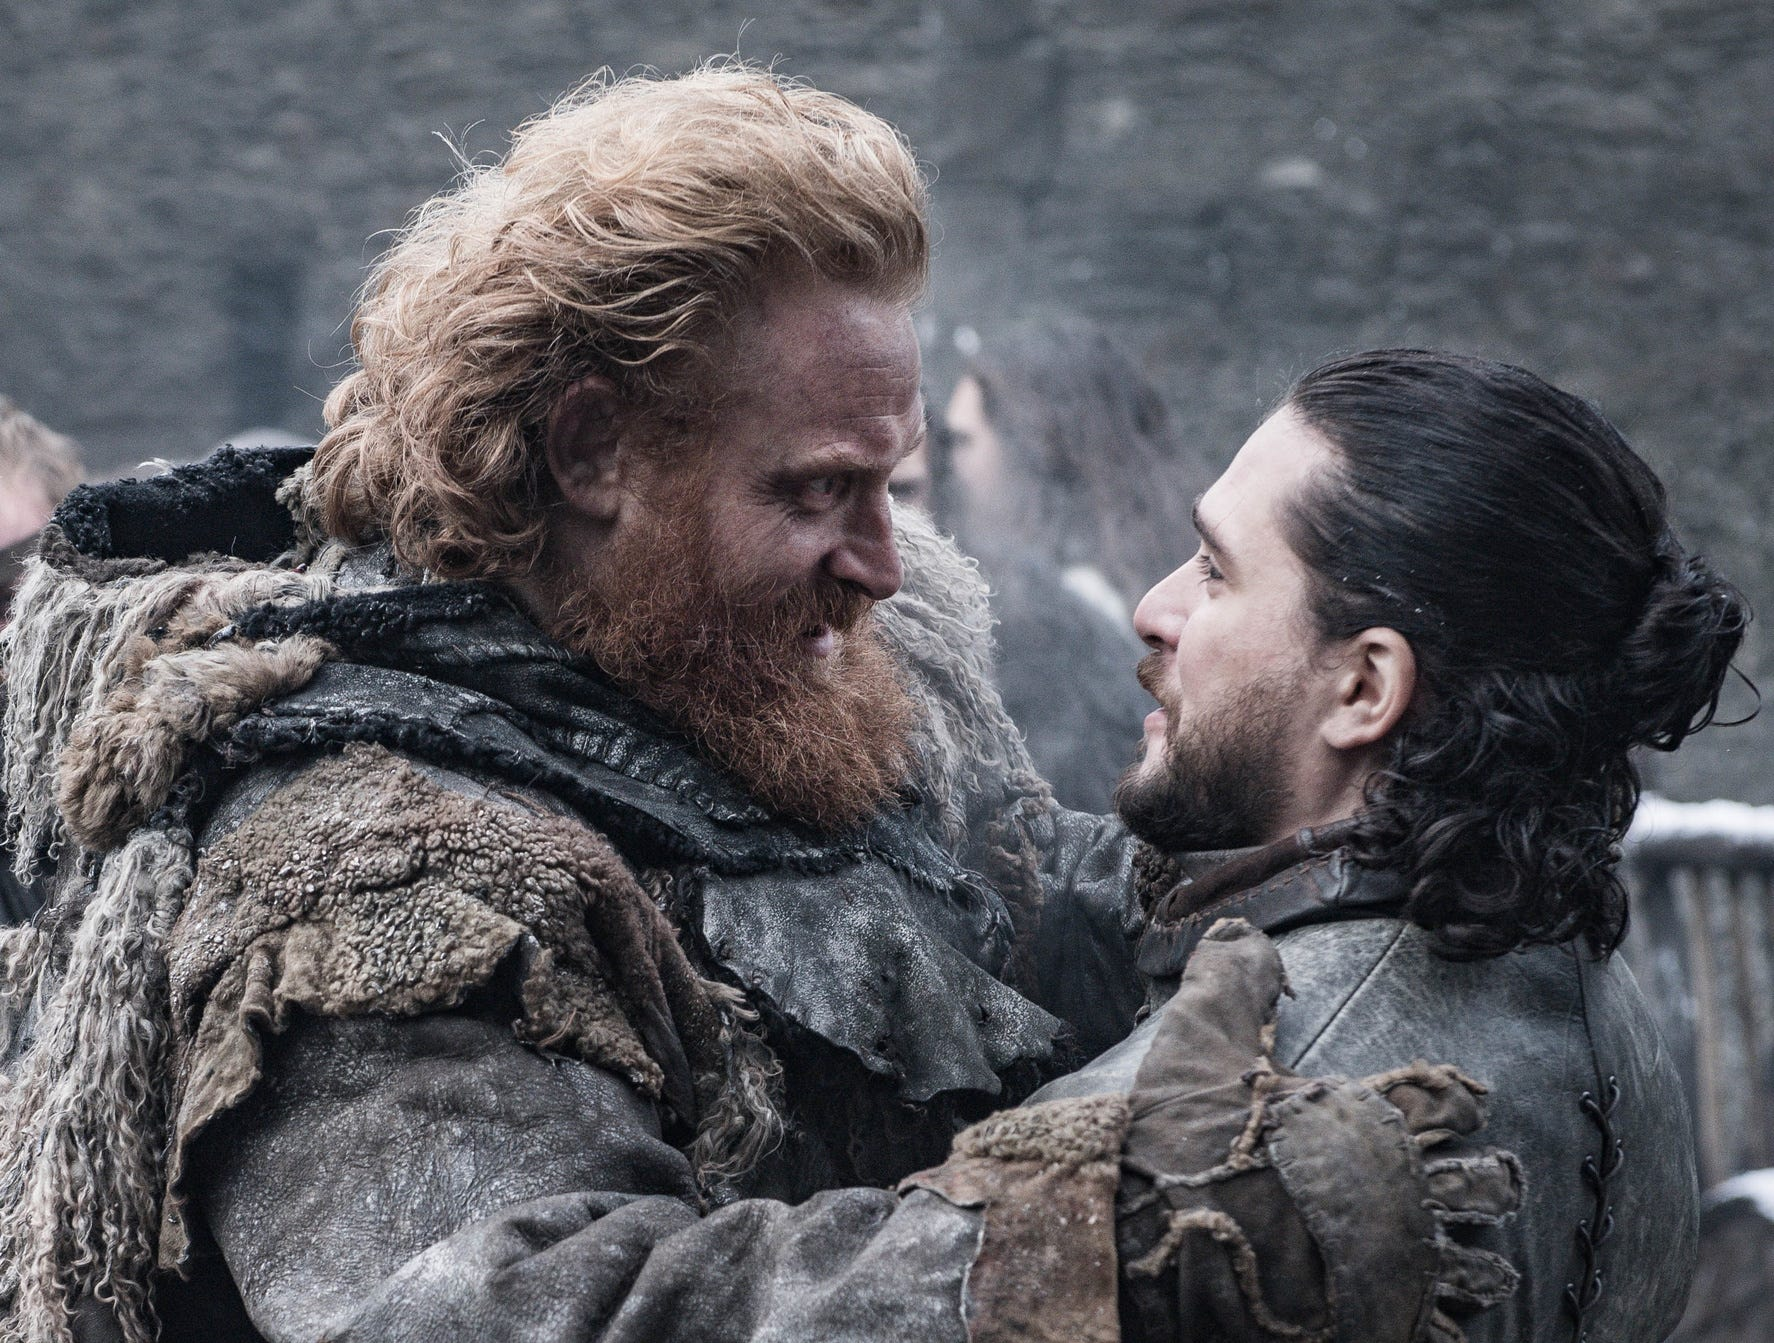 Kristofer Hivju as Tormund, left, and Kit Harington as Jon Snow on 'Game of Thrones.'